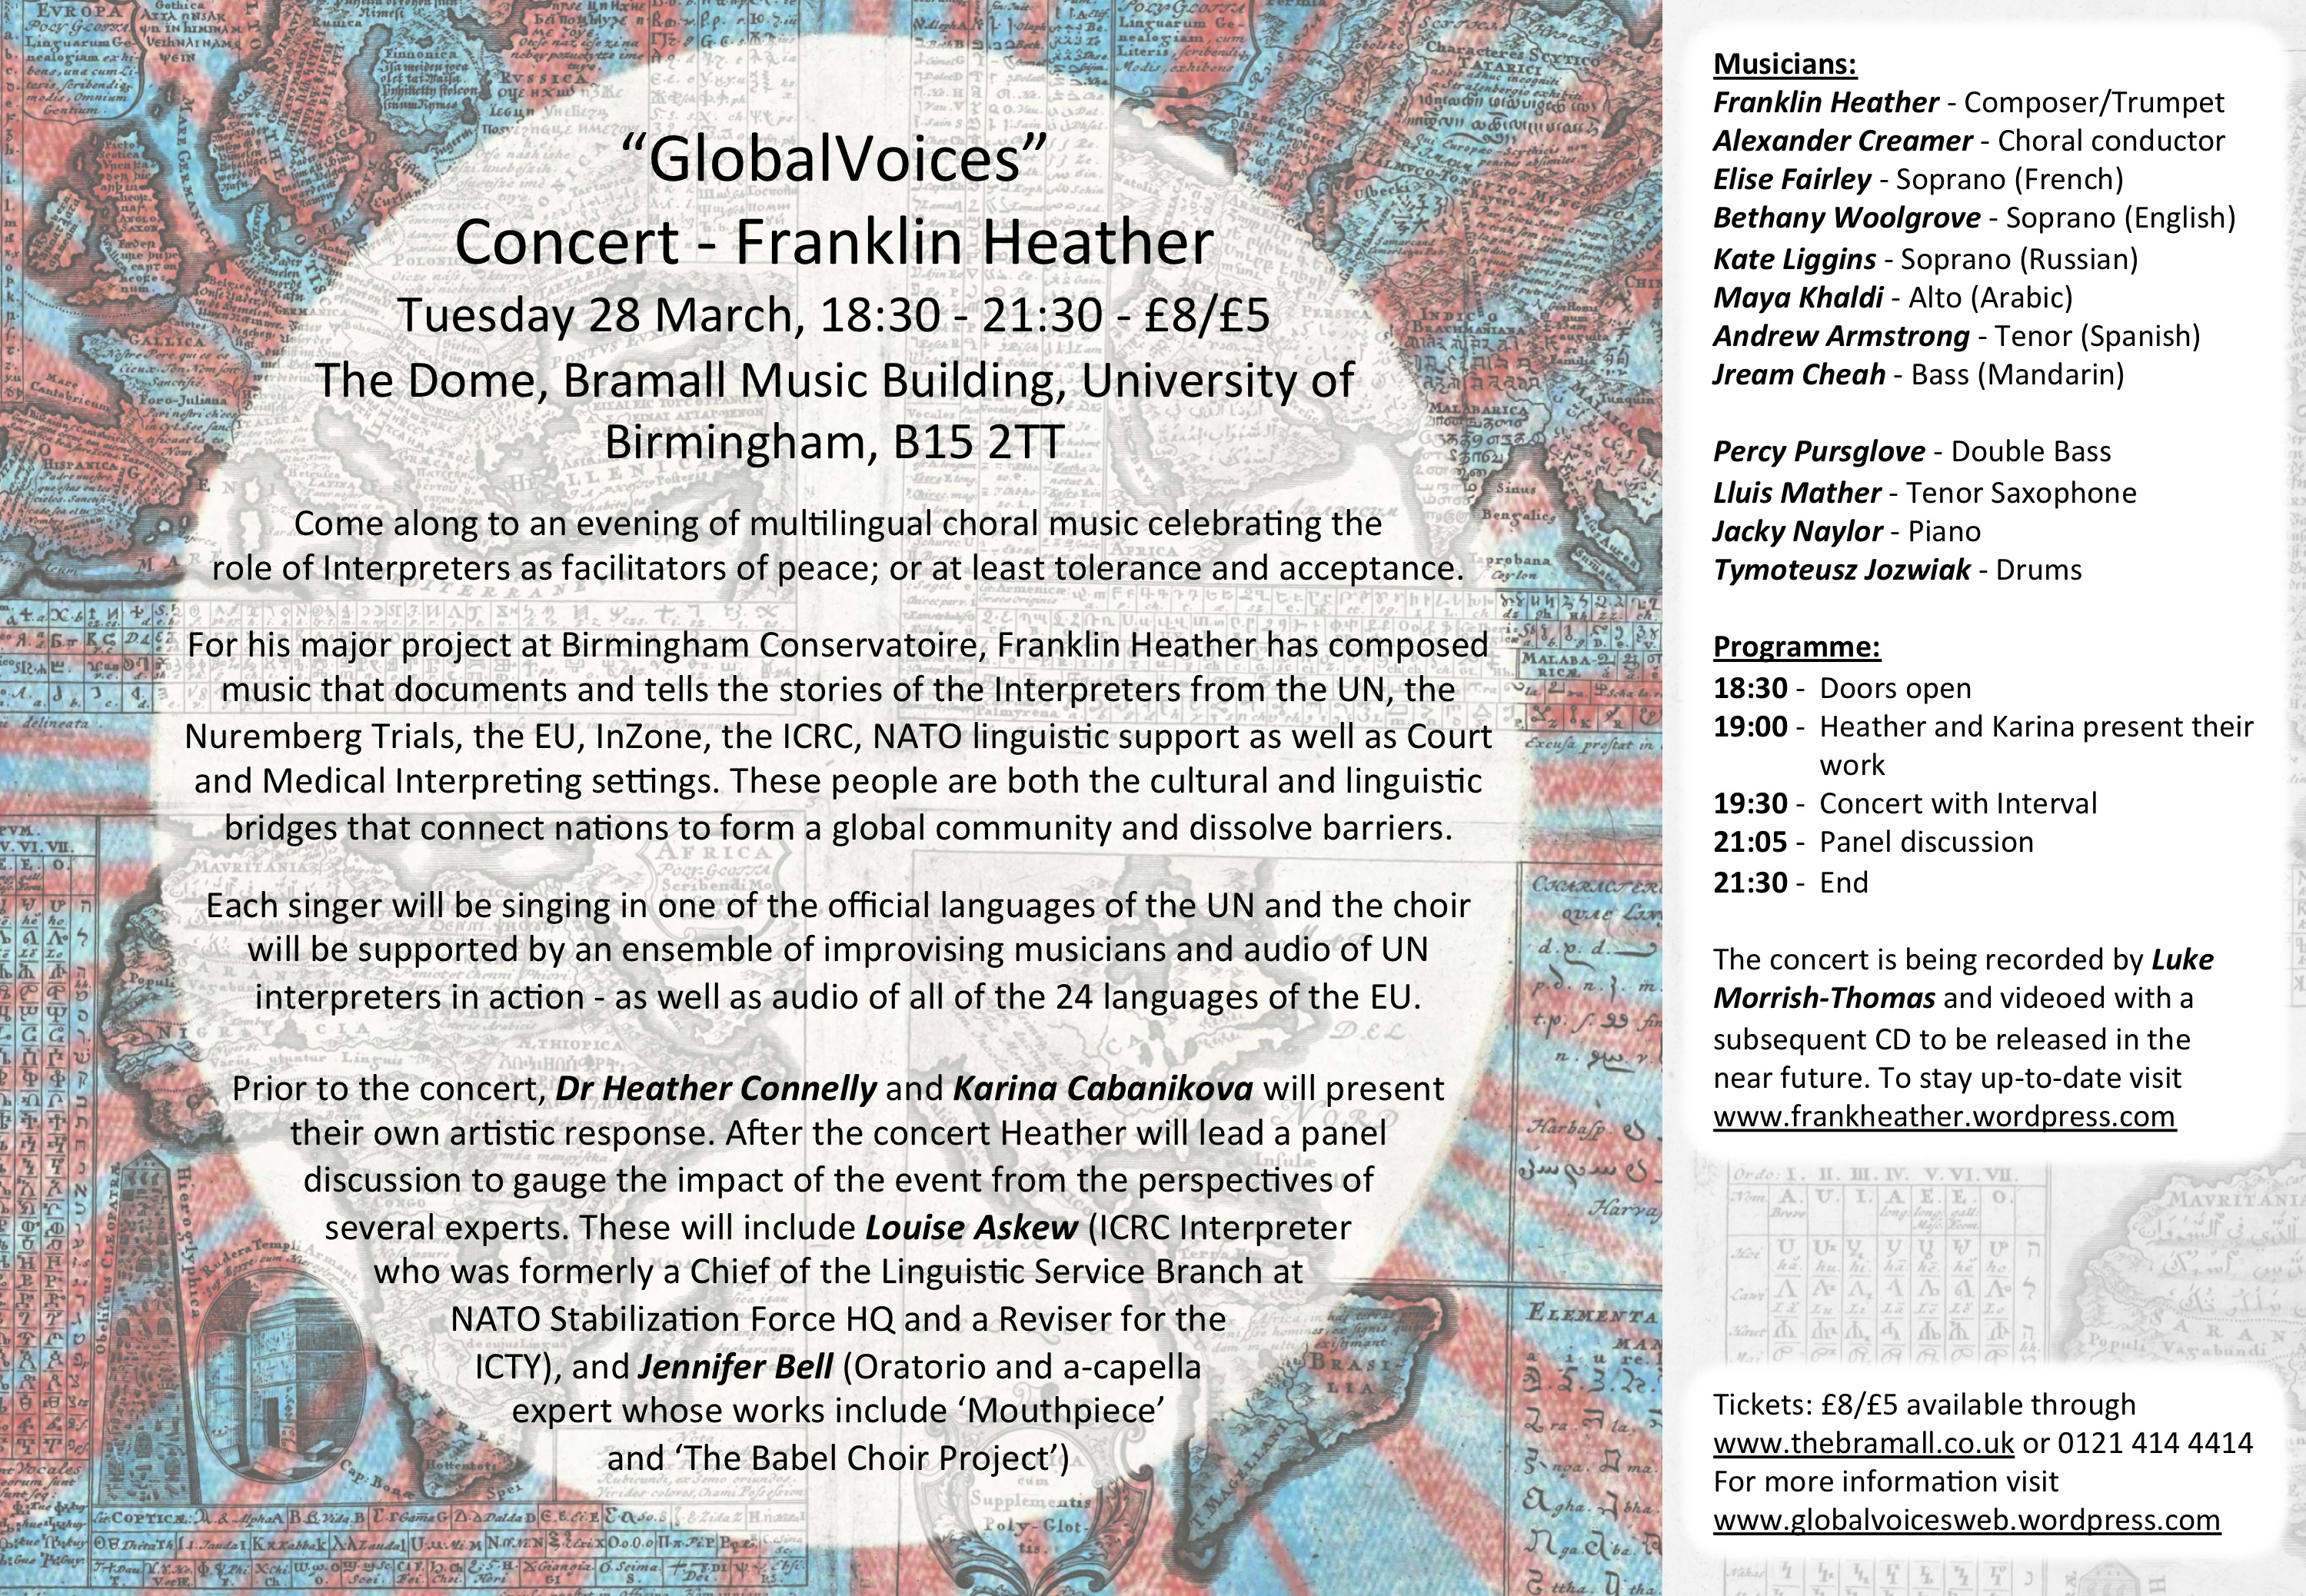 GlobalVoice press release